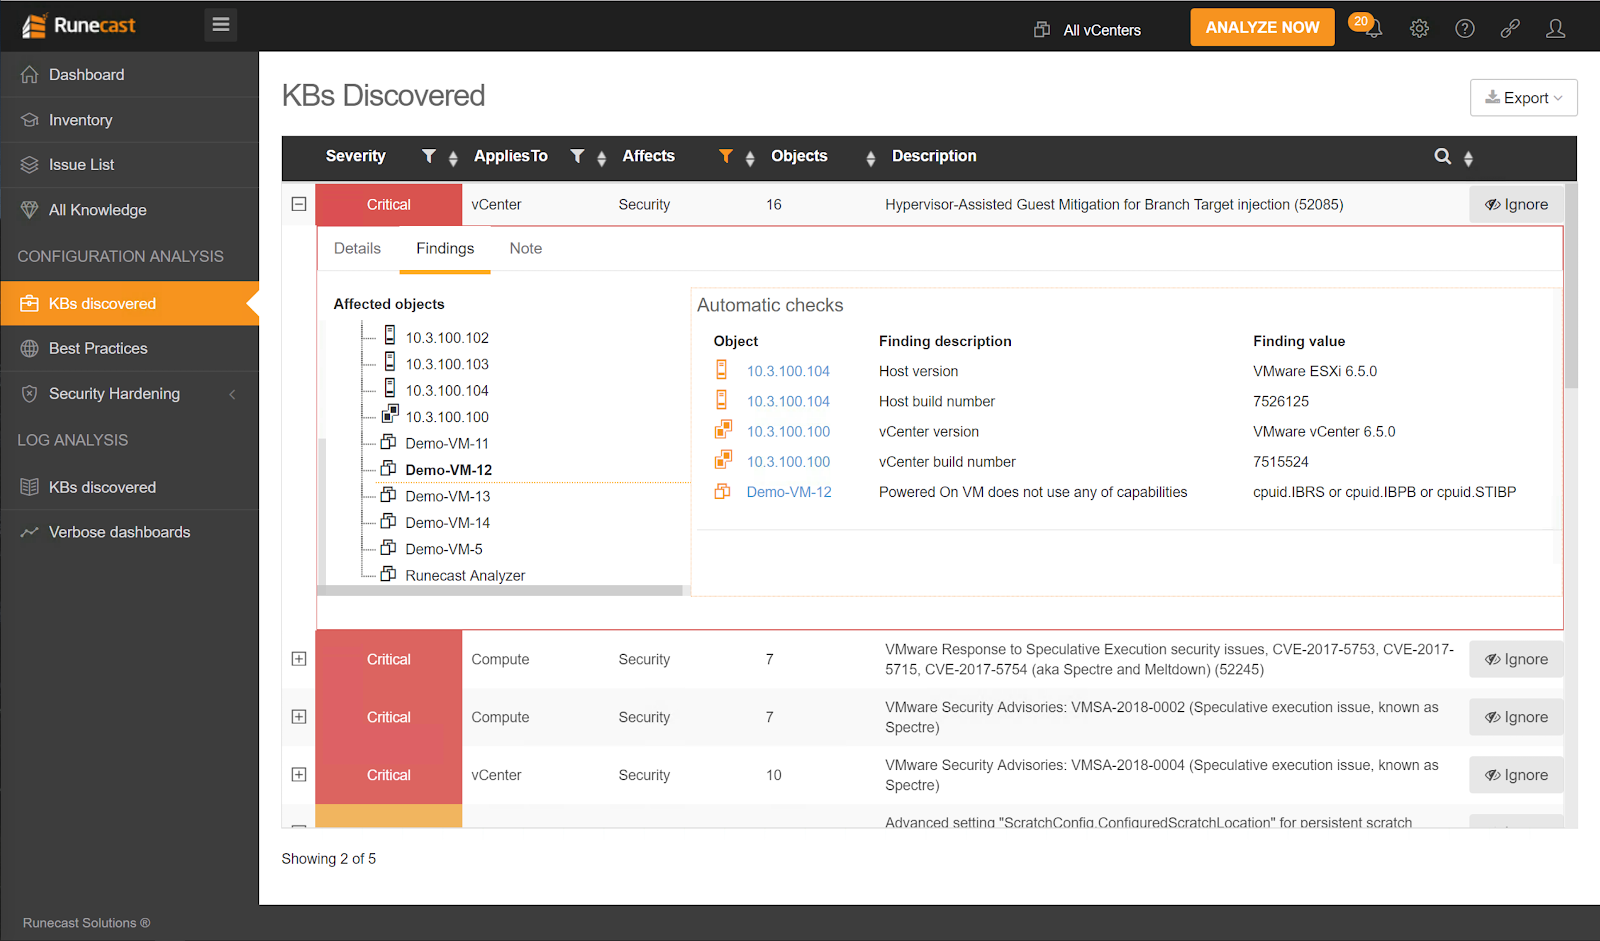 Runecast Analyzer Discovered Critical Knowledge Base Issues